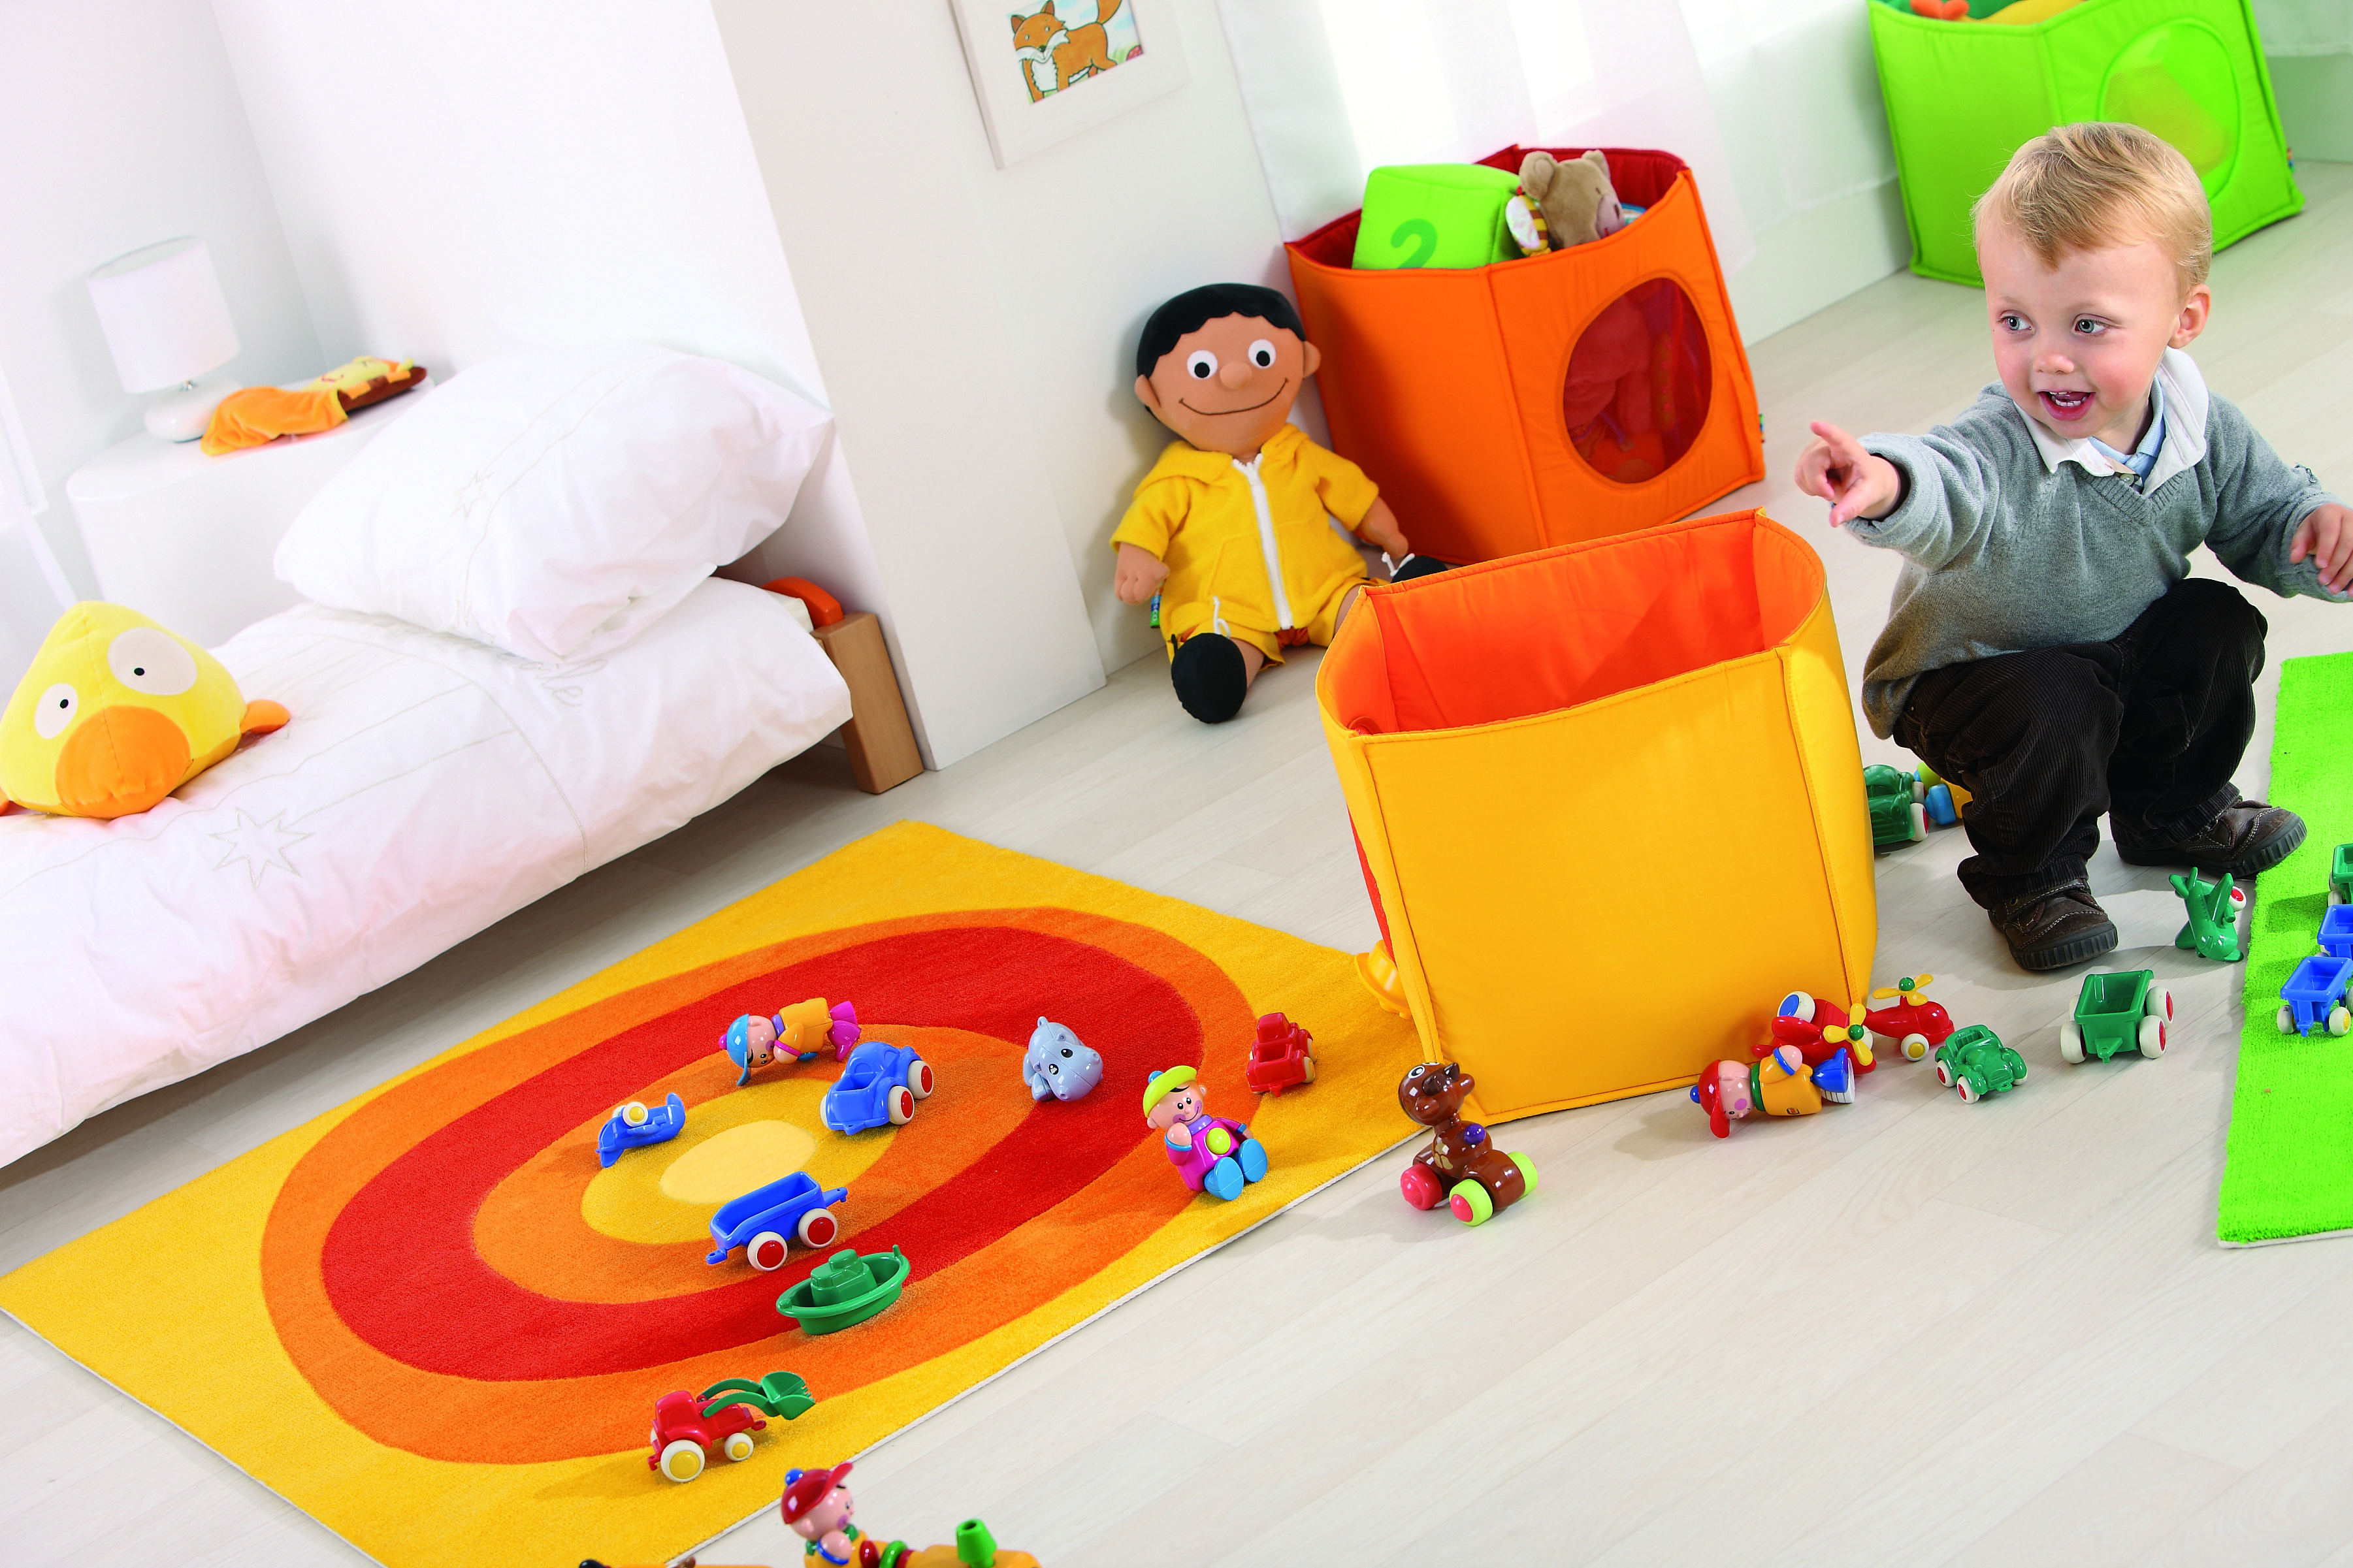 Decorate Your Daycare With Wesco These Fabric Containers Are Soft Lightweight And Safe Daycare Playroom Daycare Decor Wesco Playroom